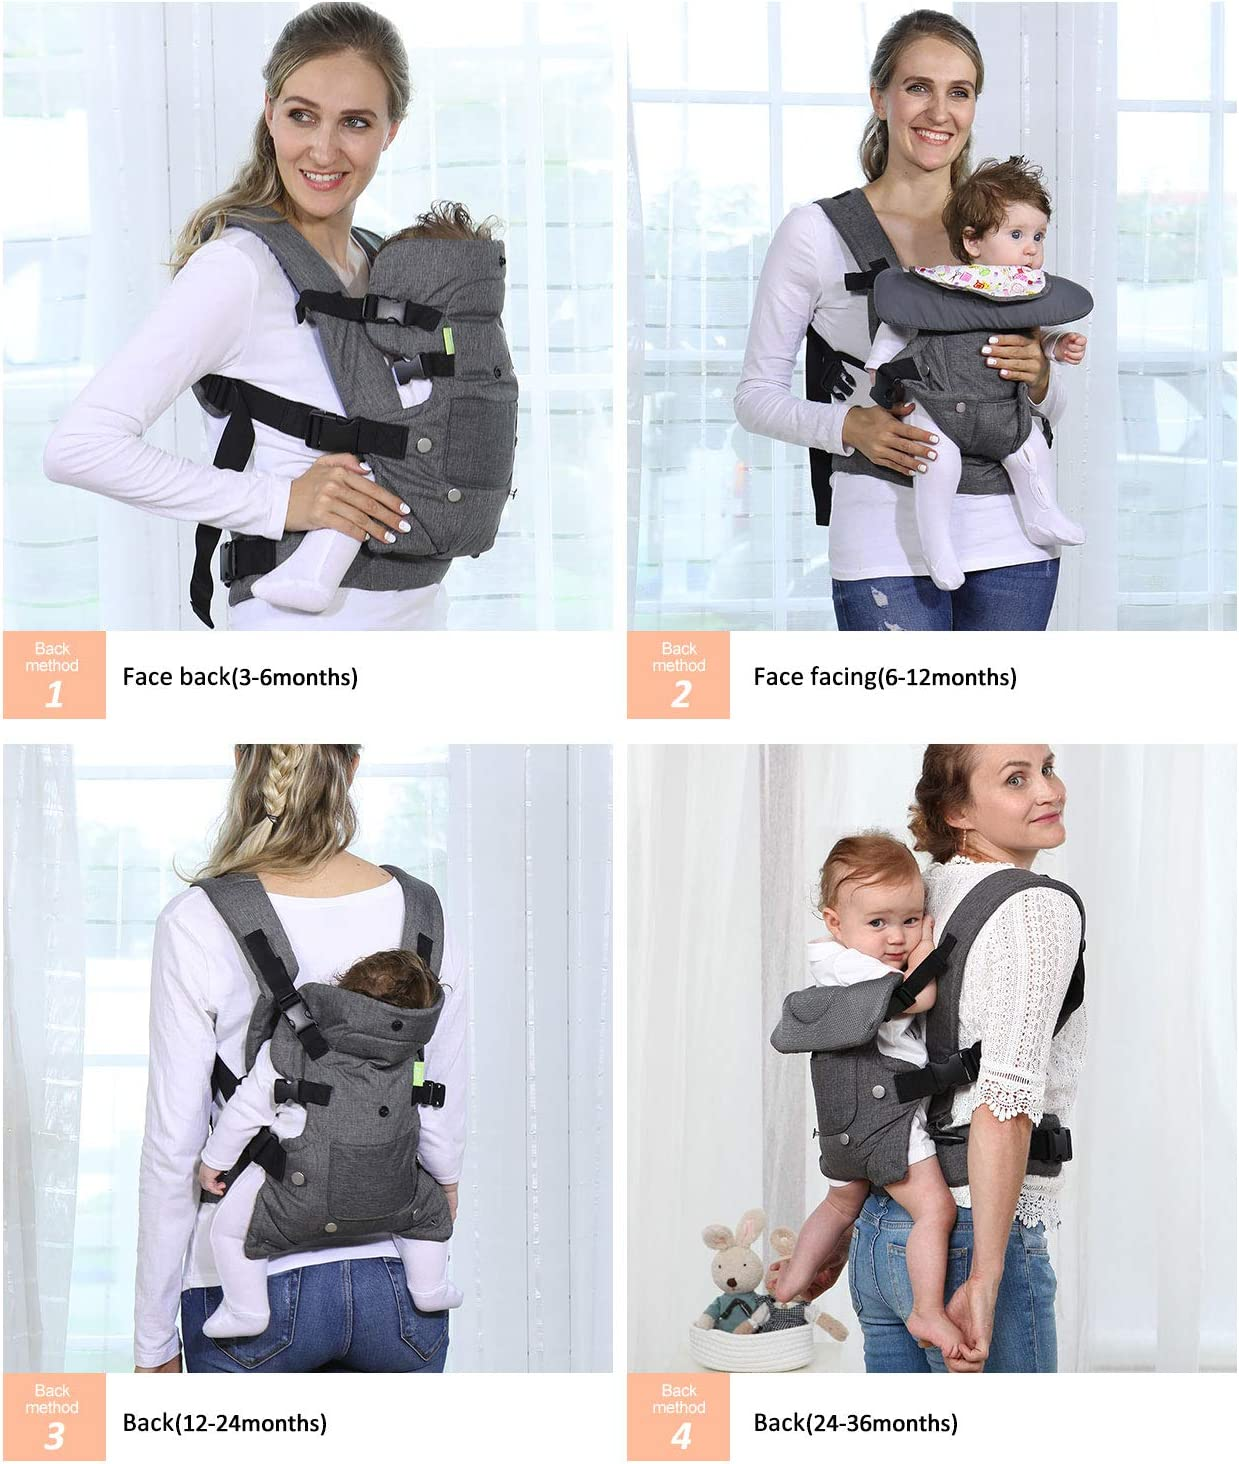 Ergonomic Design Infant Sling Convertible with Breathable Air Mesh and All Adjustable Buckles for Toddler or Newborn Babies HUIMO Baby Carrier